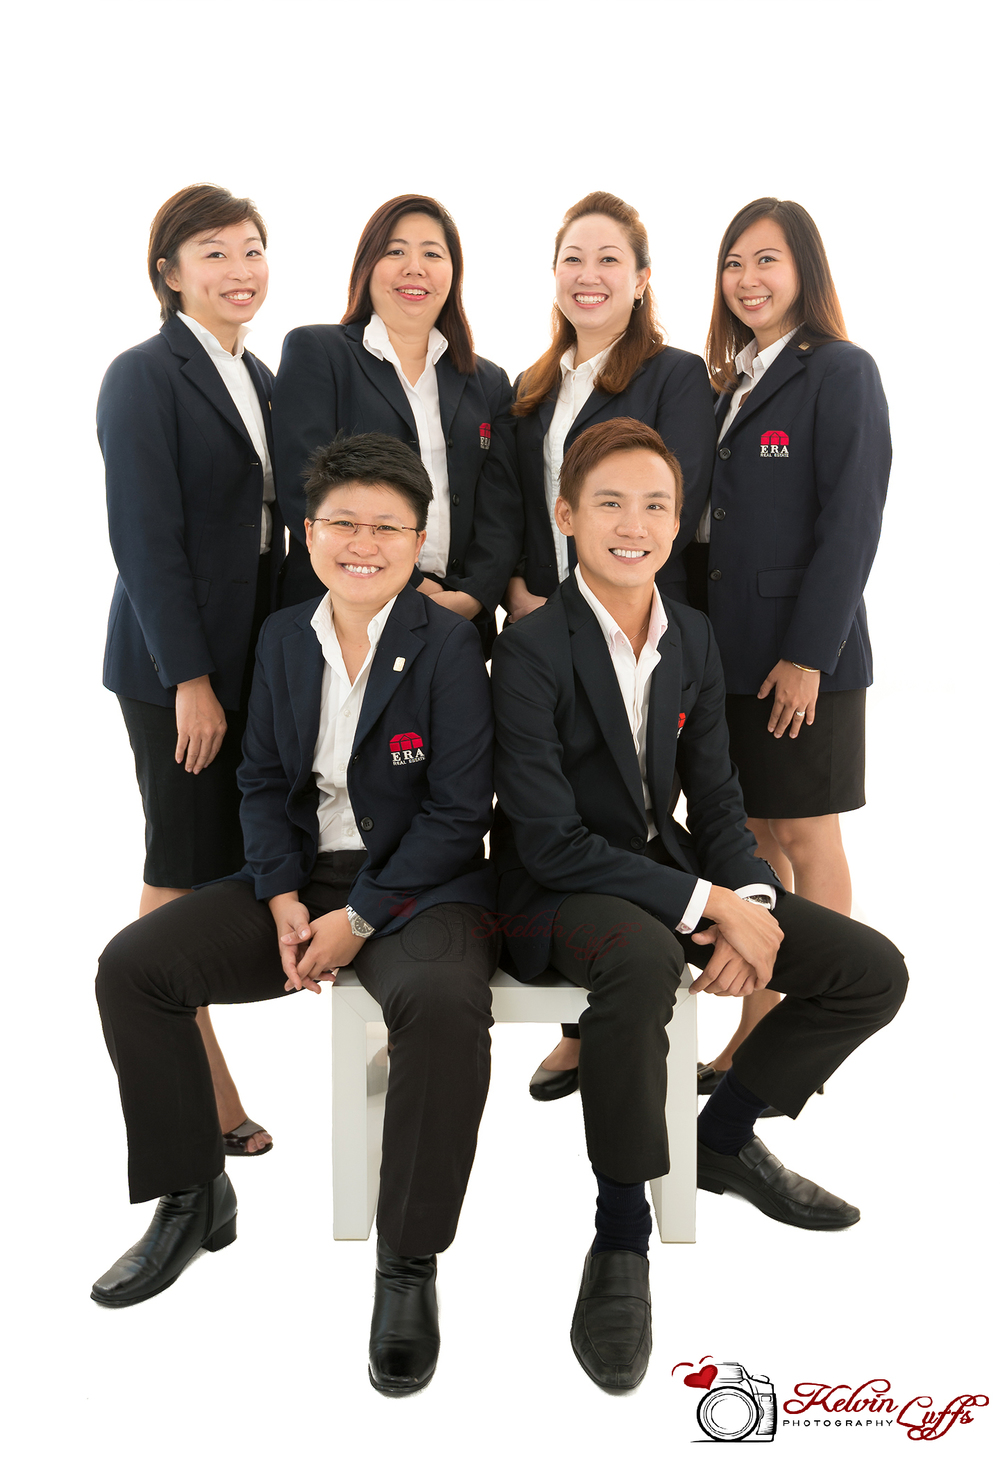 Corporate - Kelvin Luffs Photography